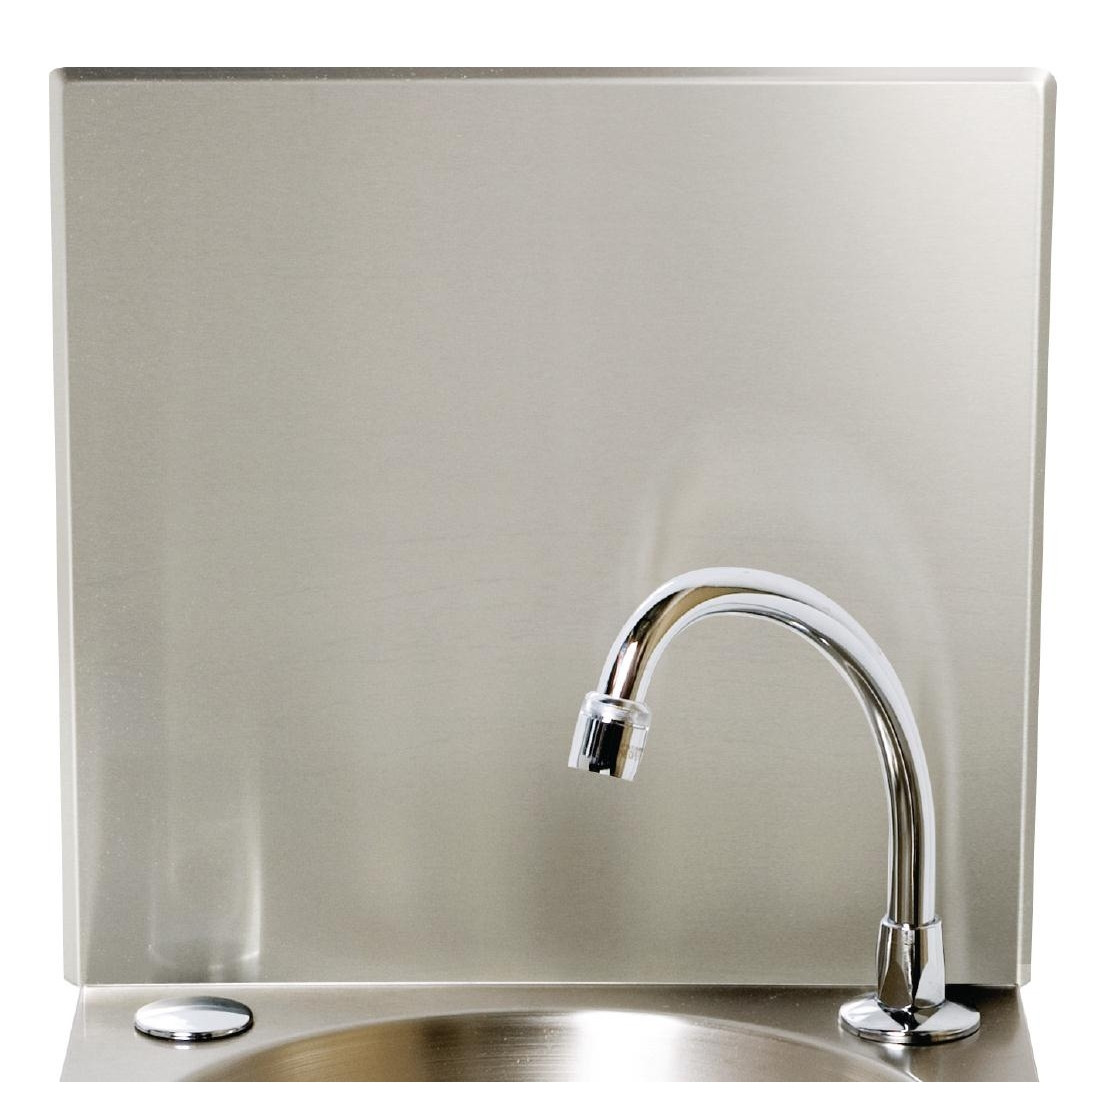 Stainless Steel Splashback Stainless Steel Splashback Panel Hand Wash Basins Sinks Wash